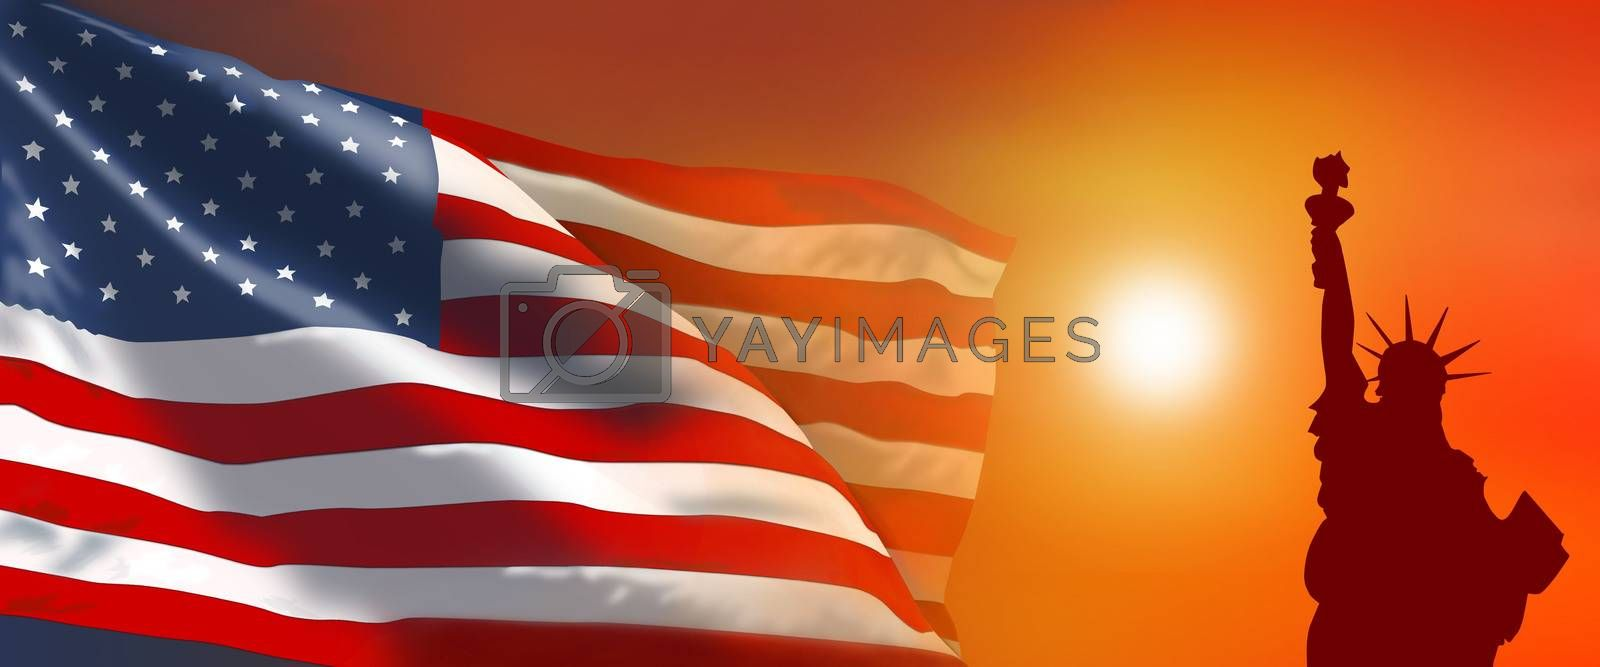 American flag and Statue of Liberty at sunset. American flag on a sunset background. American flag against the background of the sun.